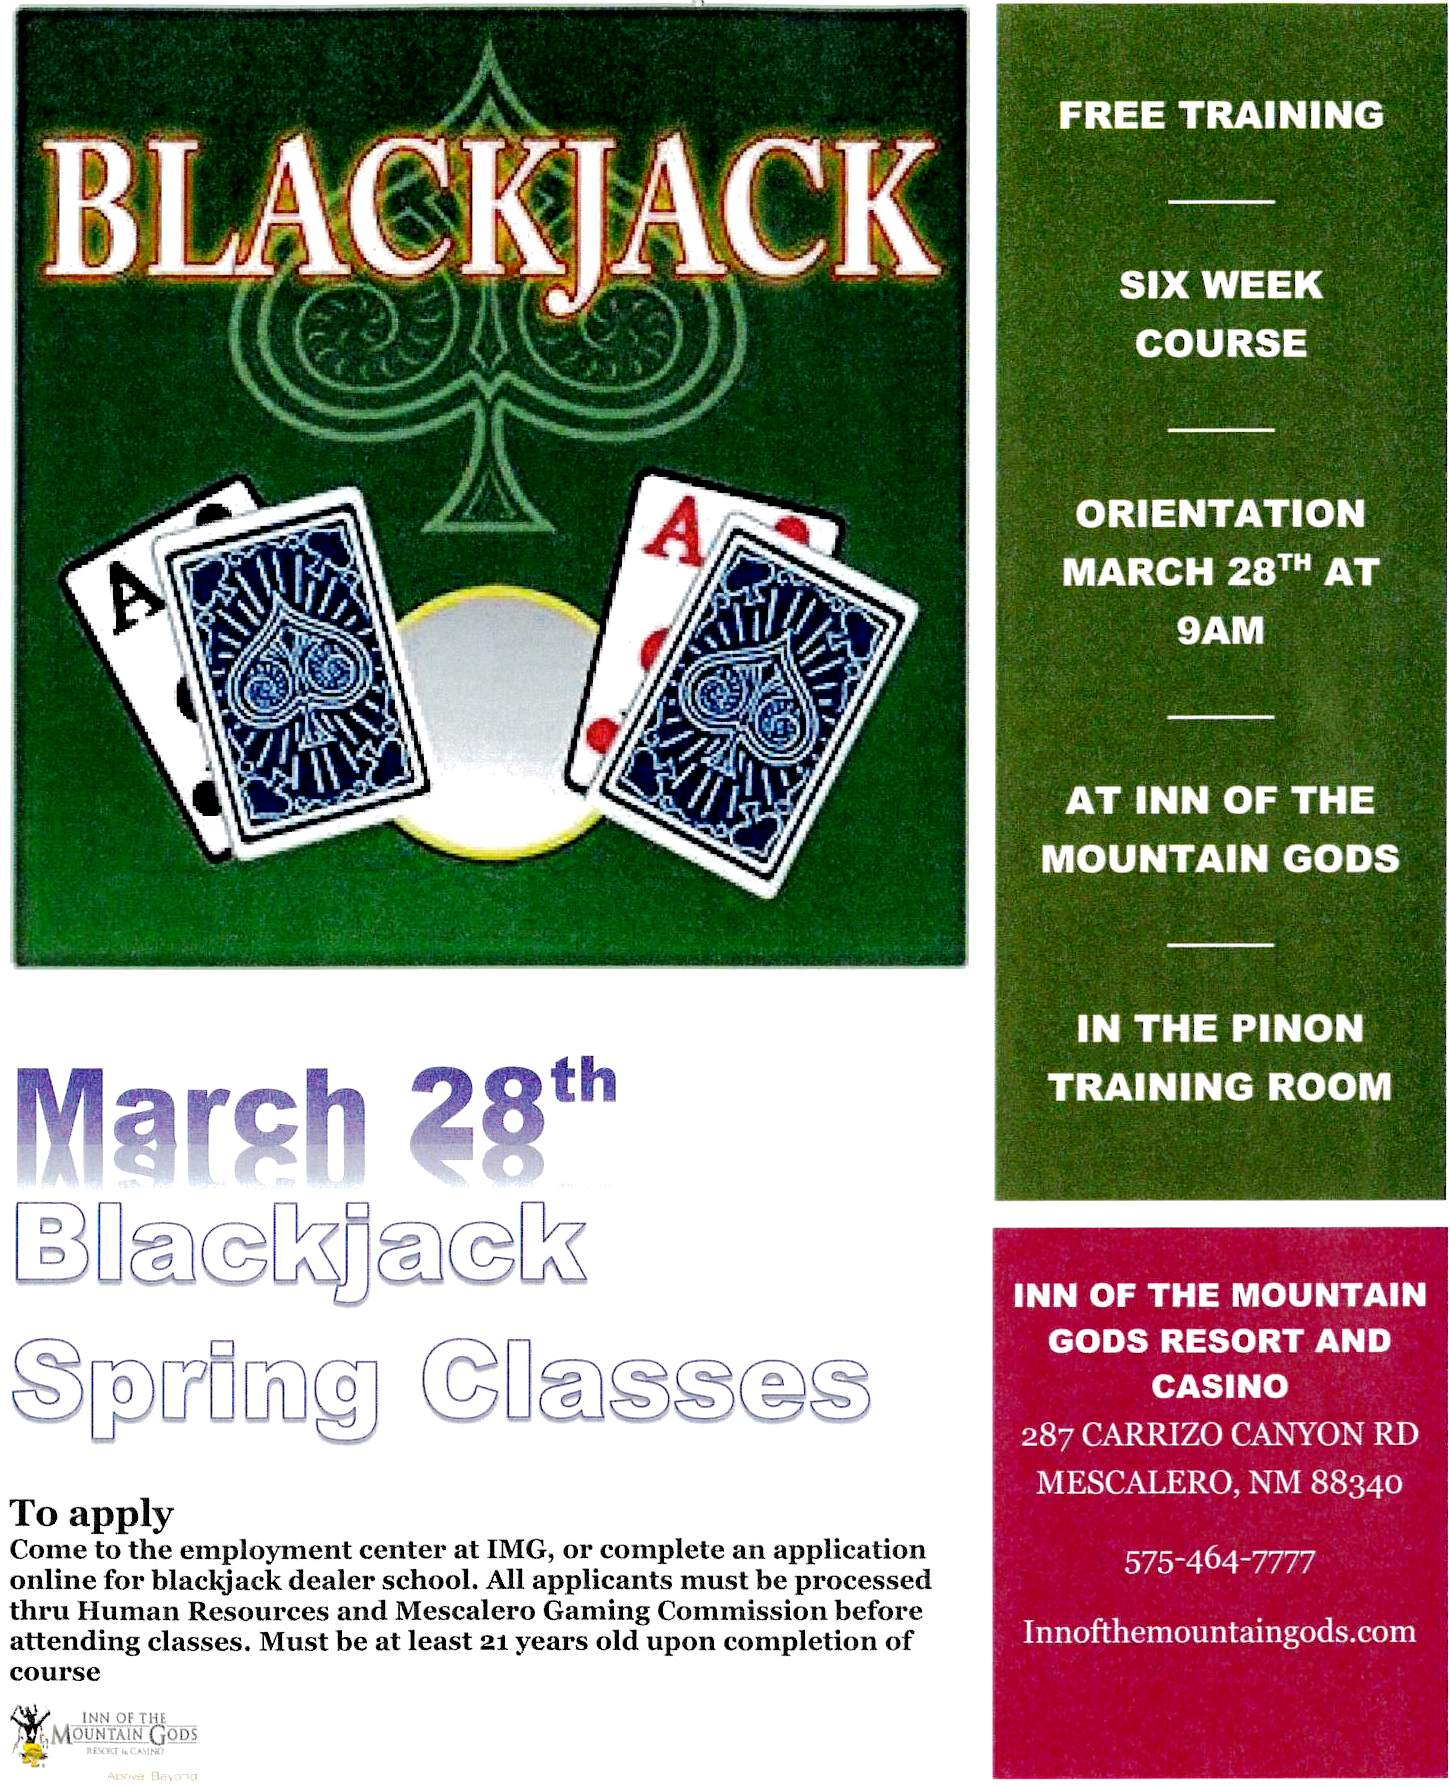 Blackjack lessons